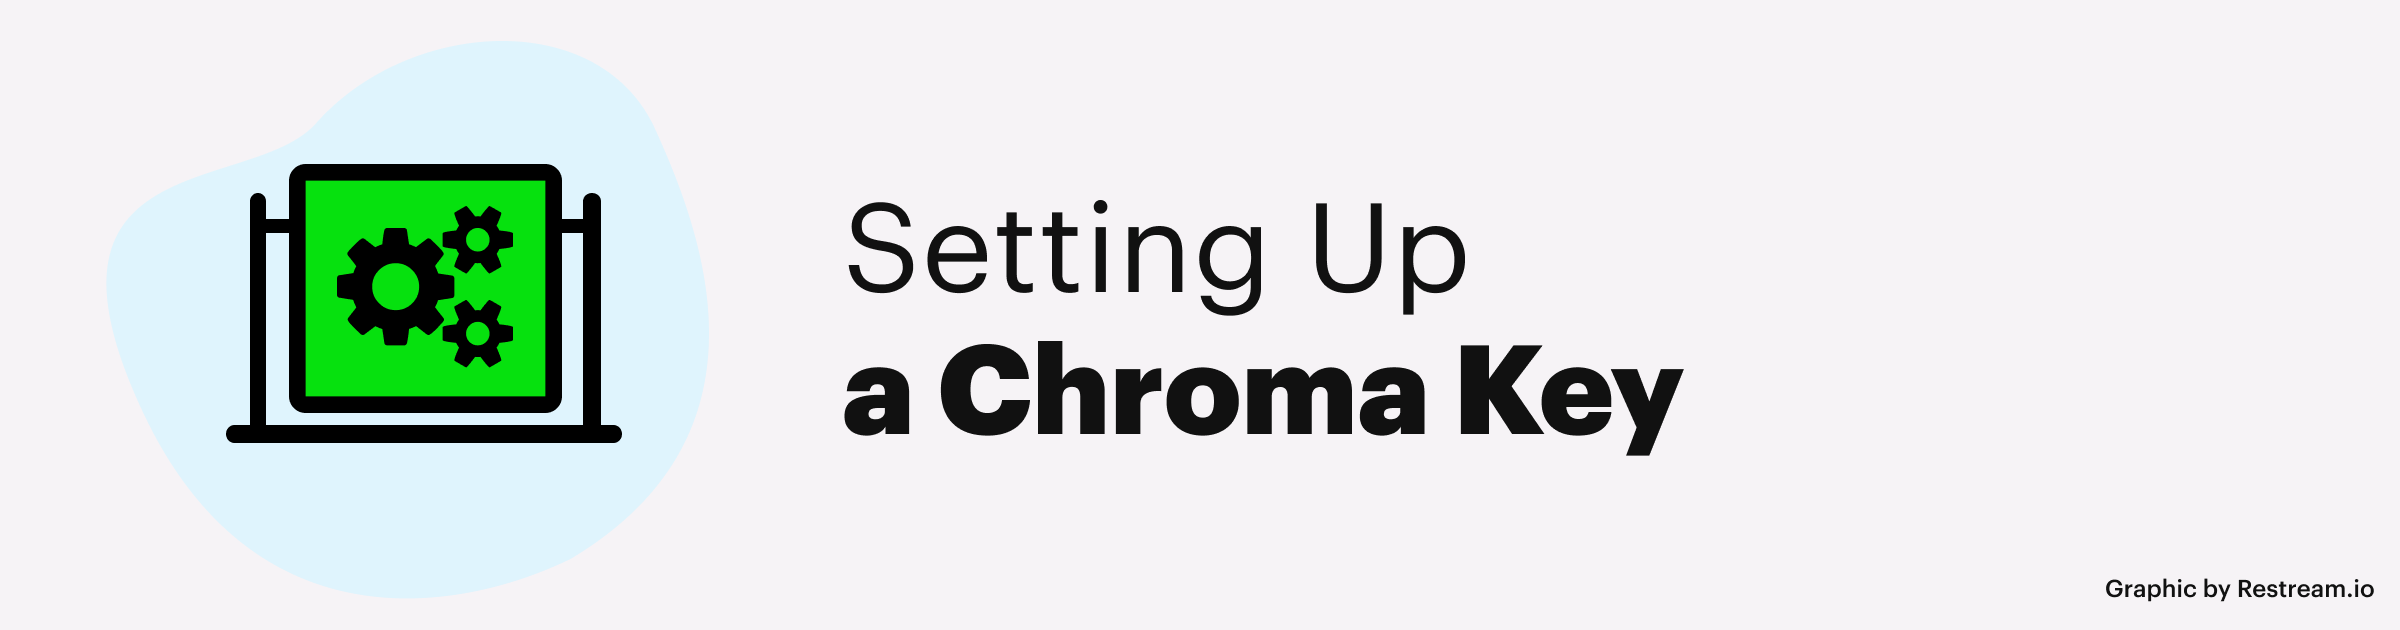 Setting Up a Chroma Key